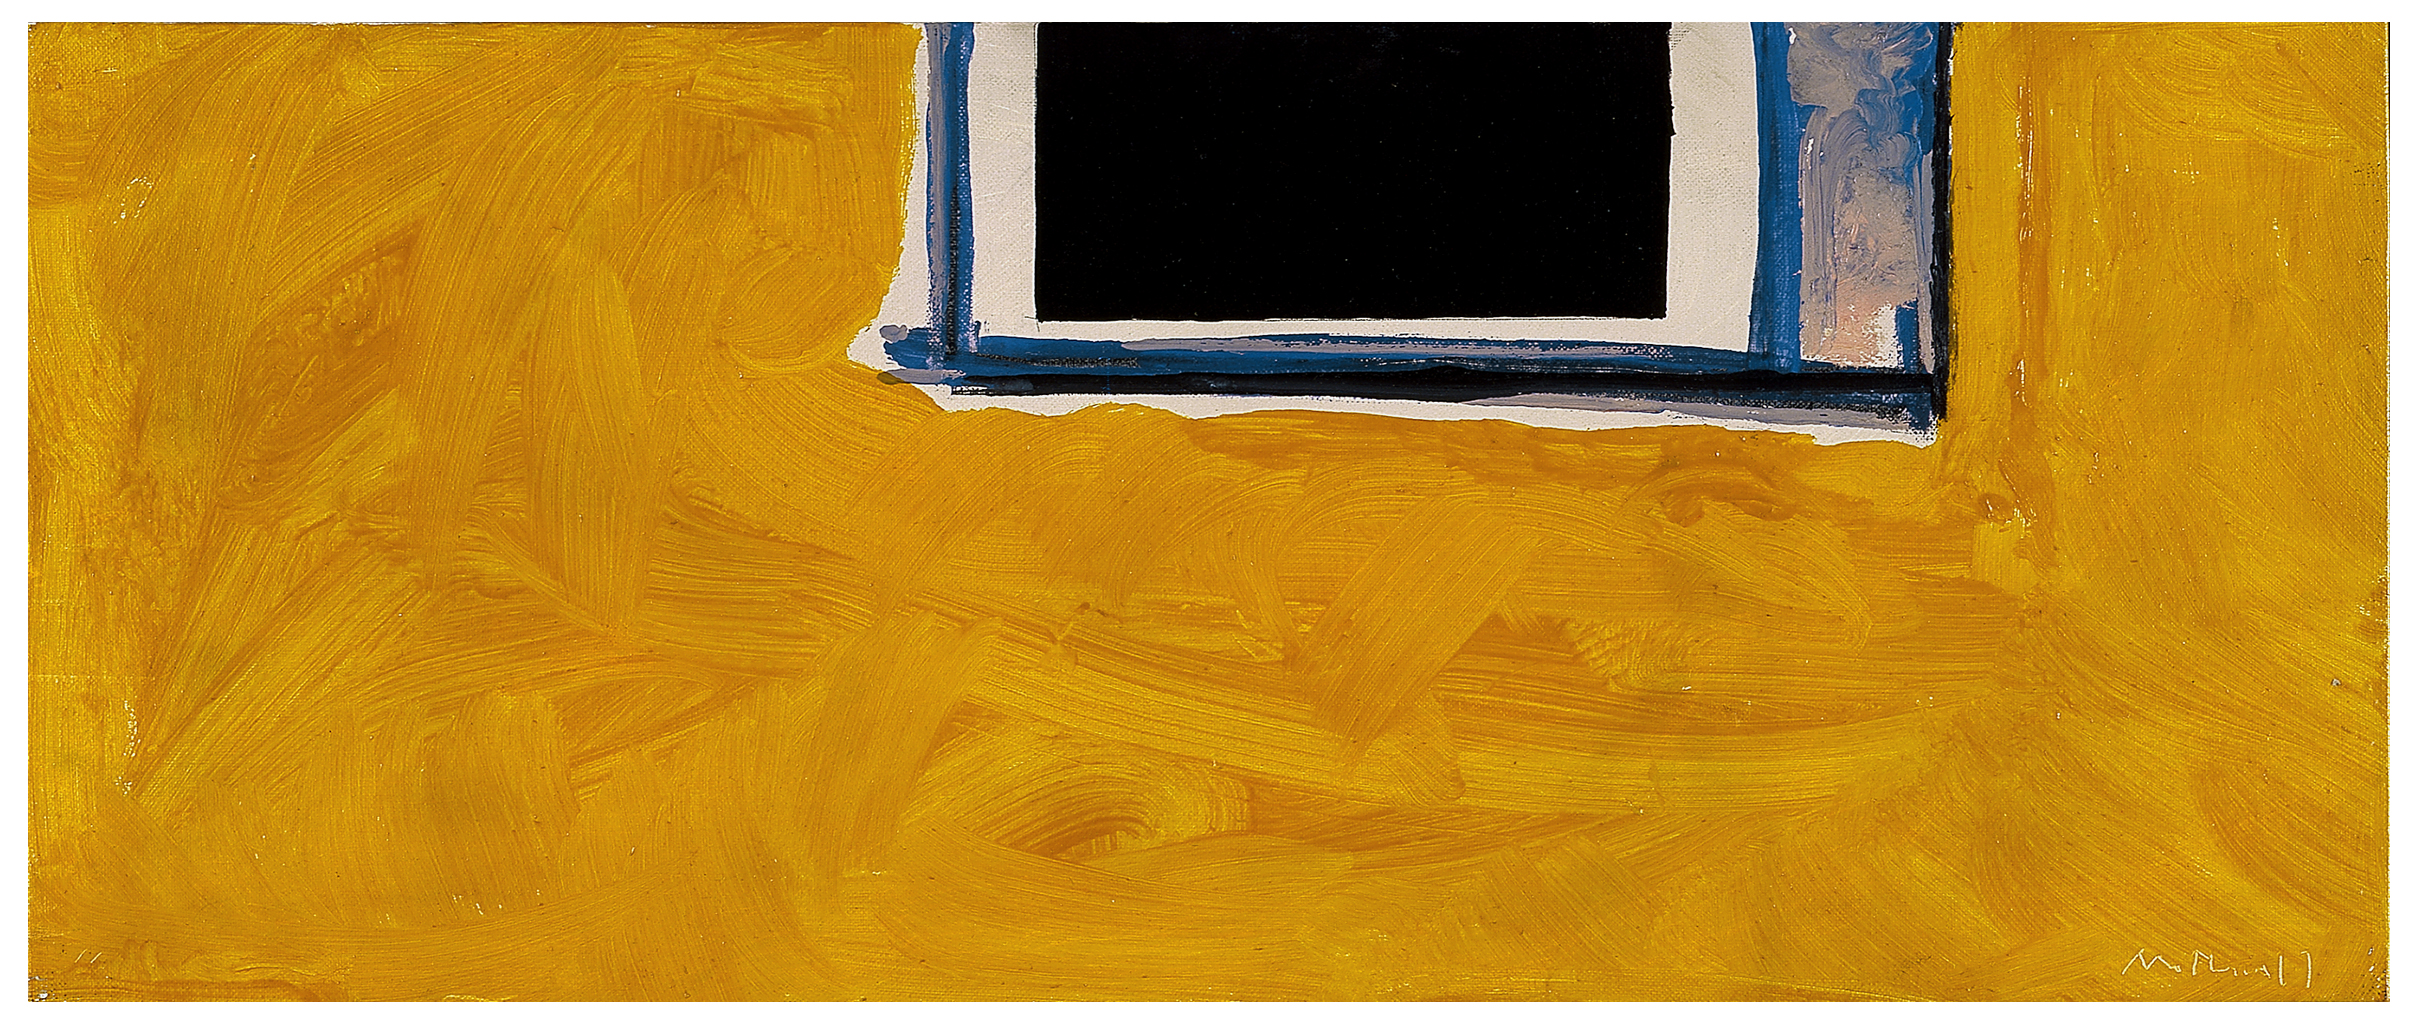 Untitled (Open in Yellow, Black, and Blue), 1970